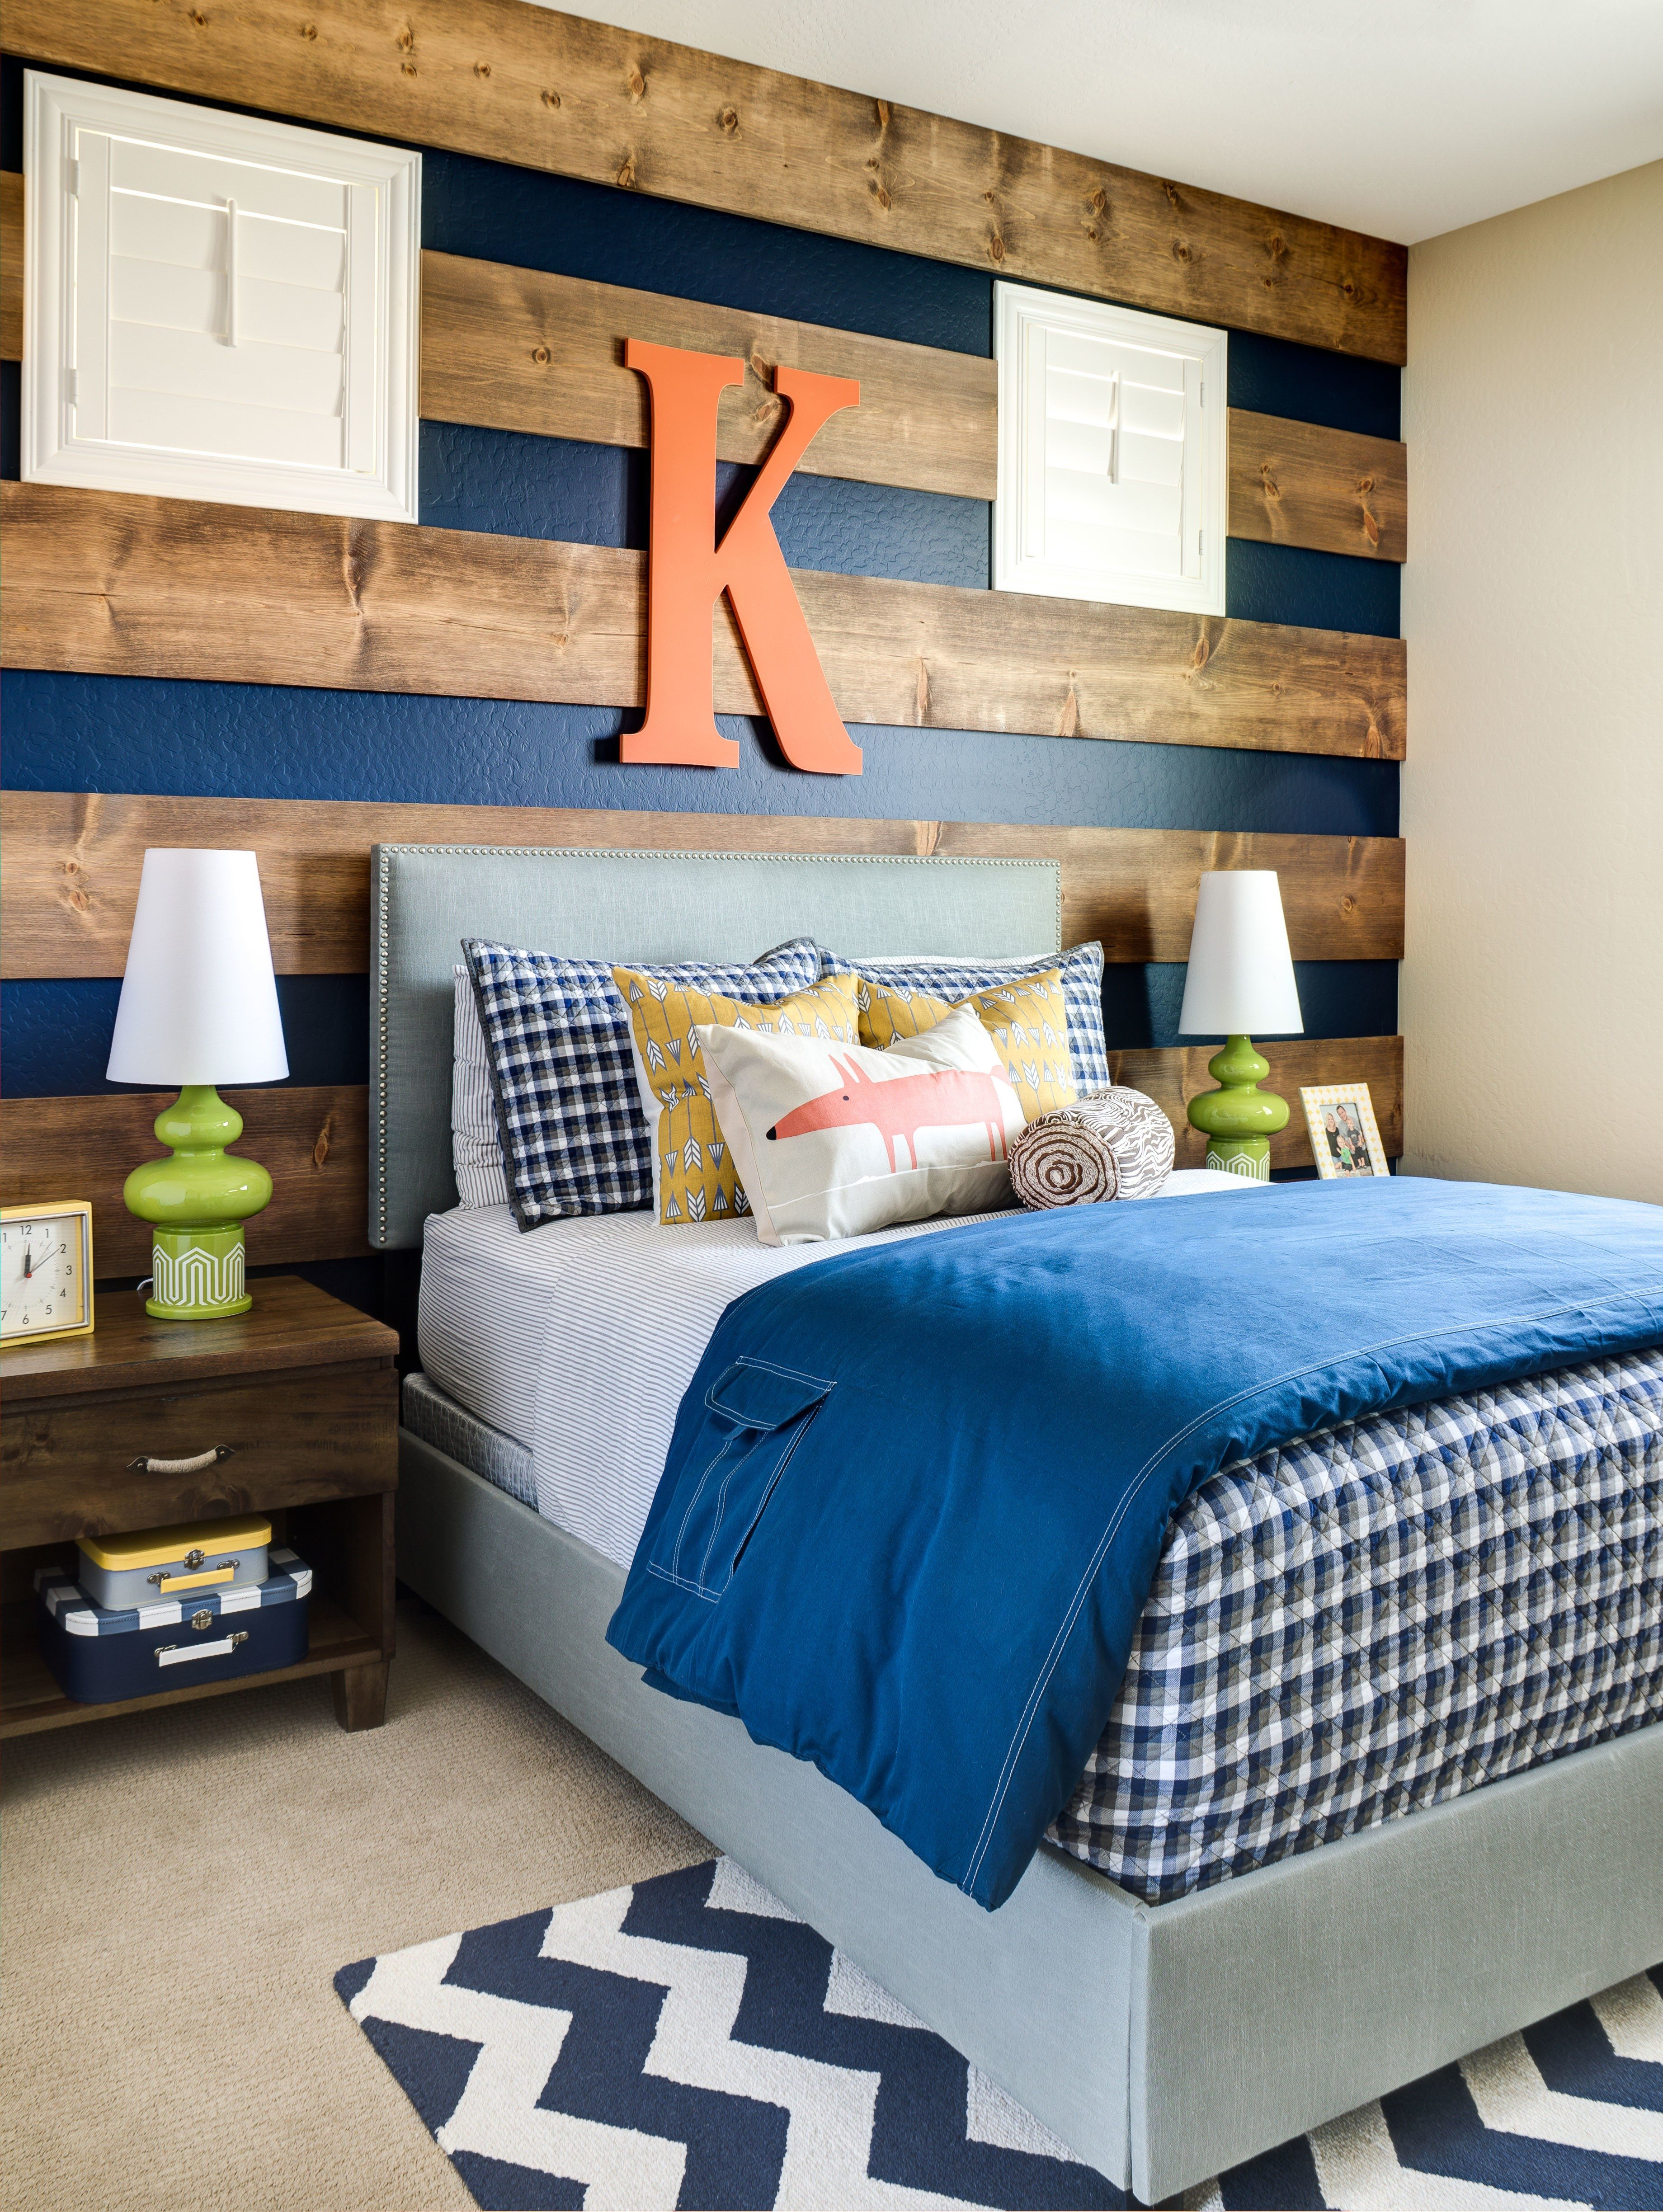 3 Wall Decor Ideas Perfect For Kids Rooms New Room Big Boy